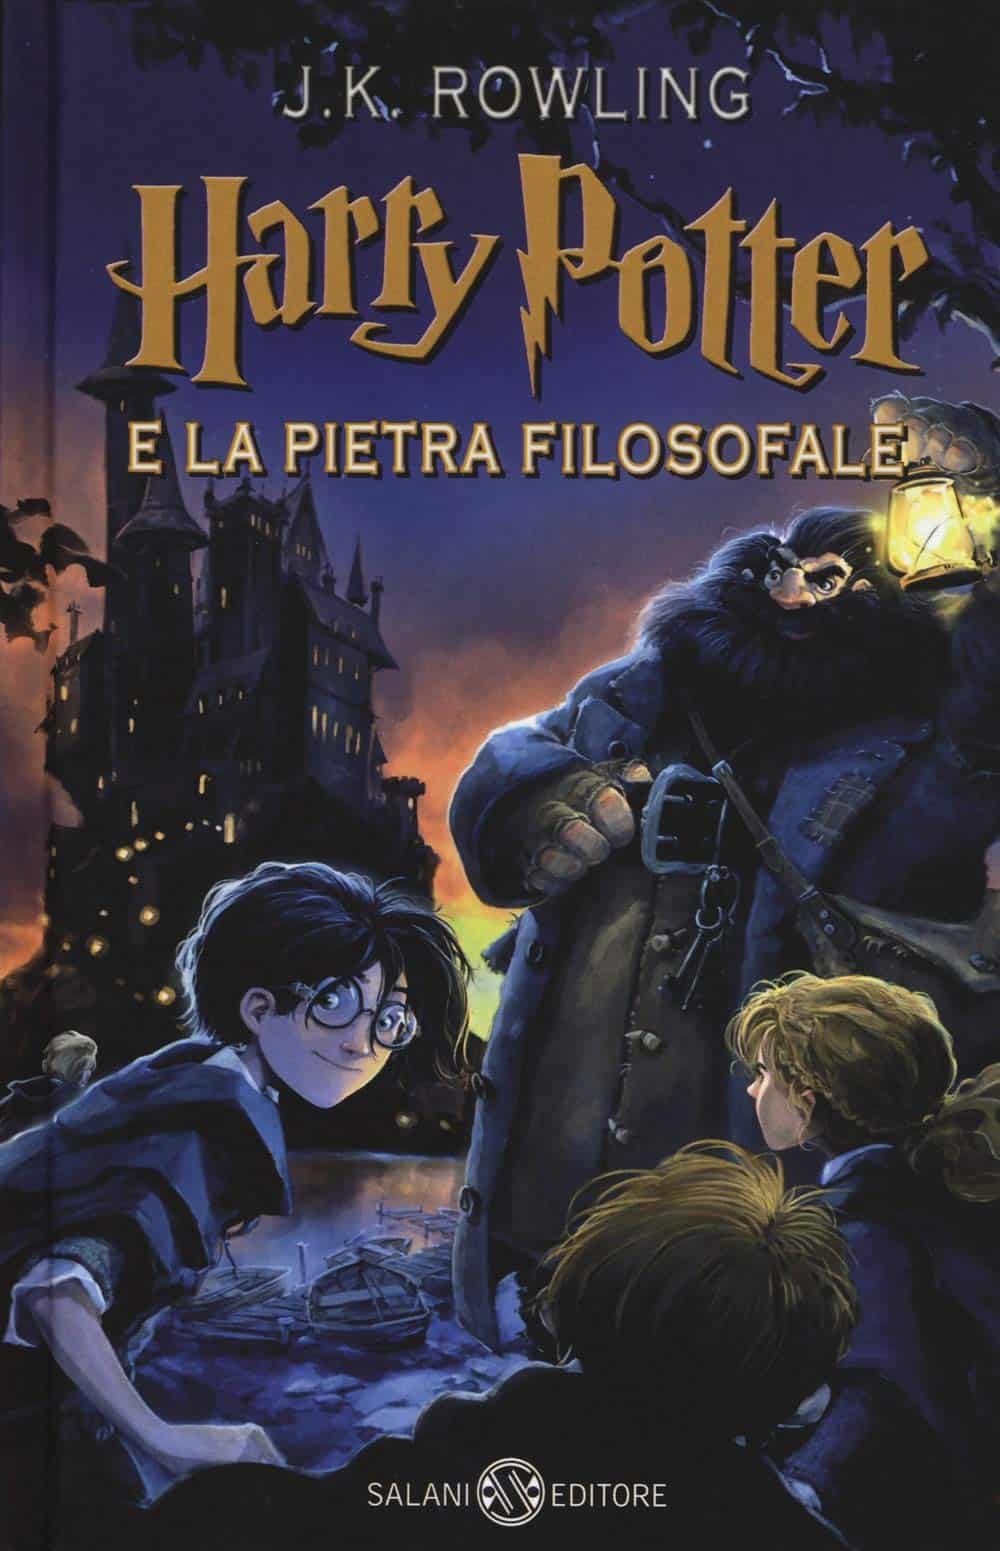 harry-potter-pietra-filosofale-jonny-duddle